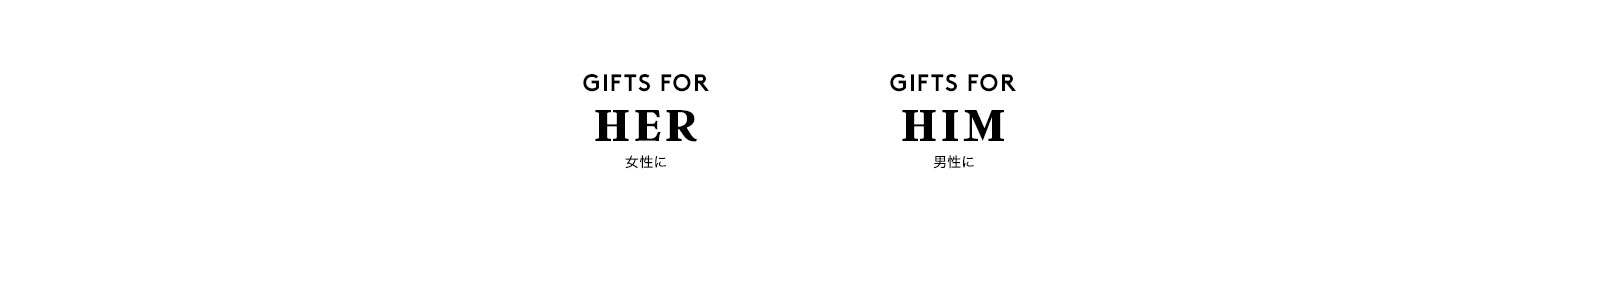 GIFTS FOR HER, GIFTS FOR HIM